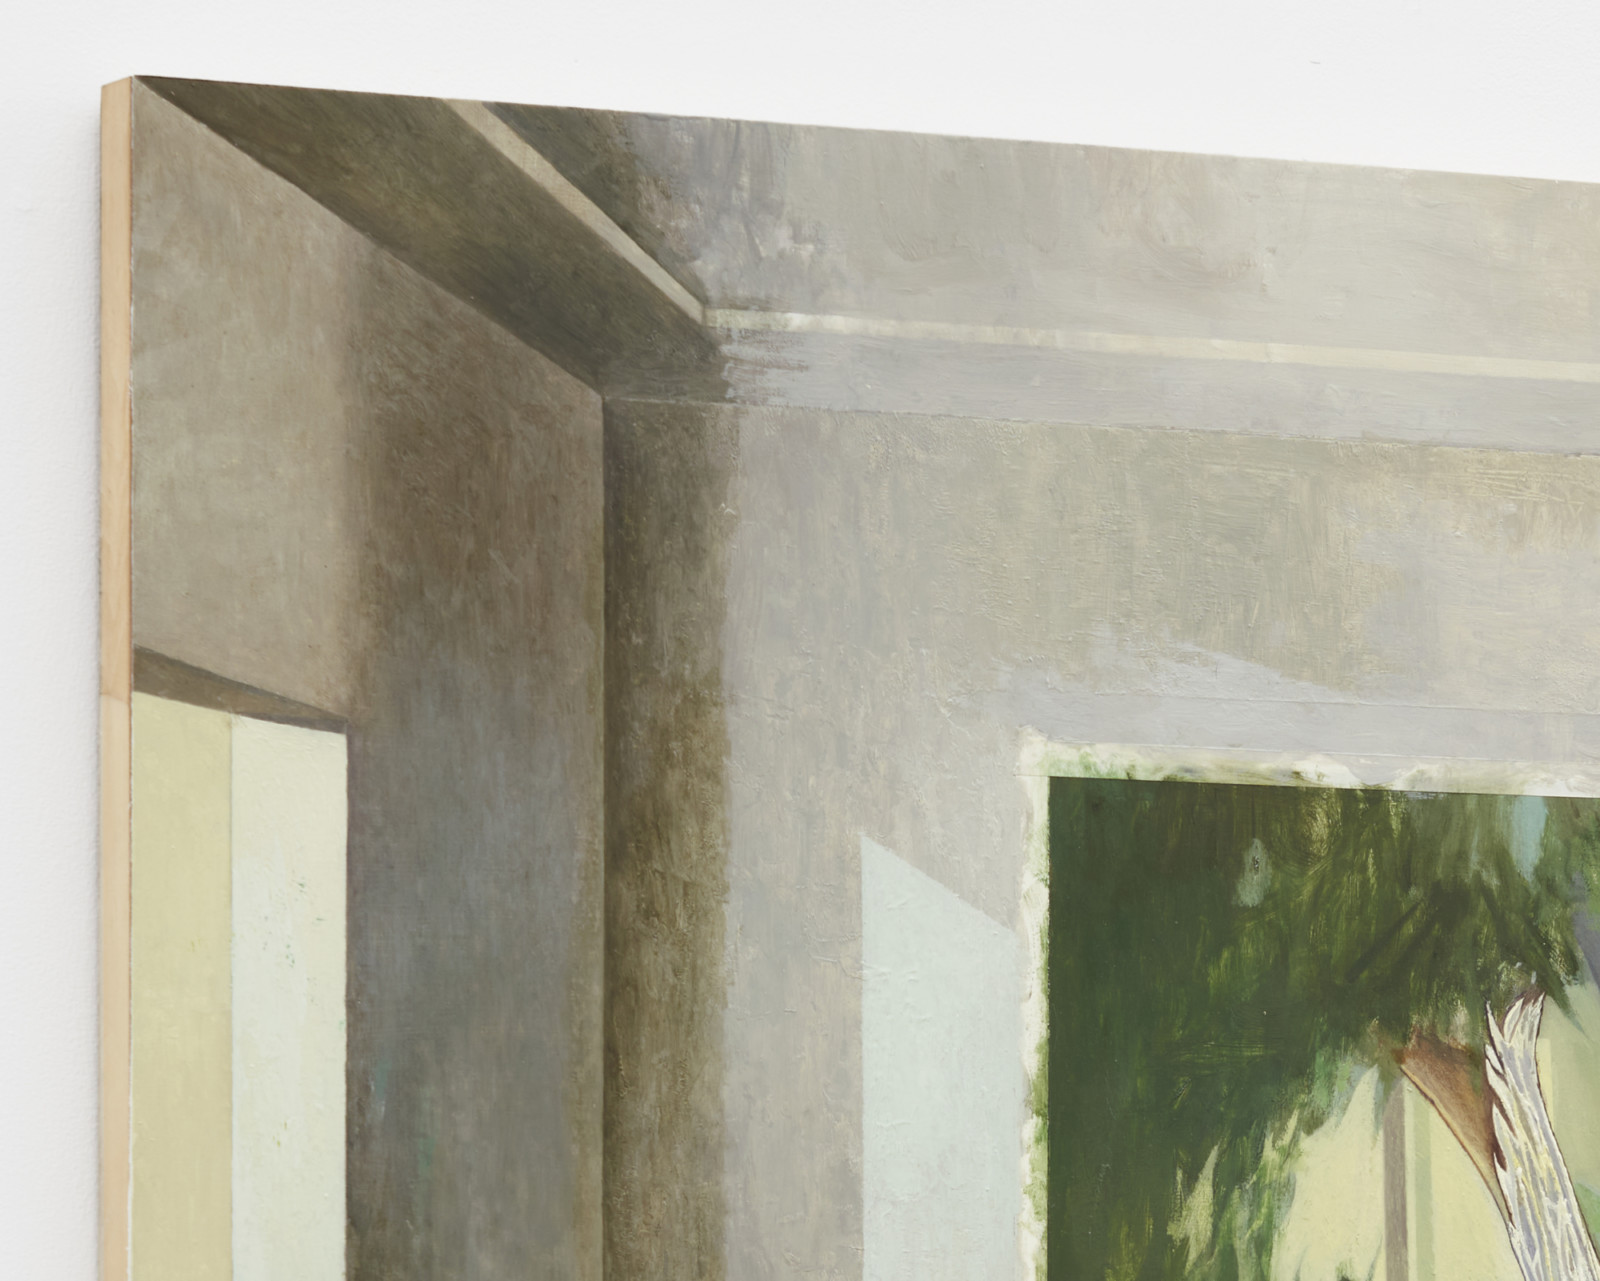 Painting by Julien Nguyen, , dated 2021